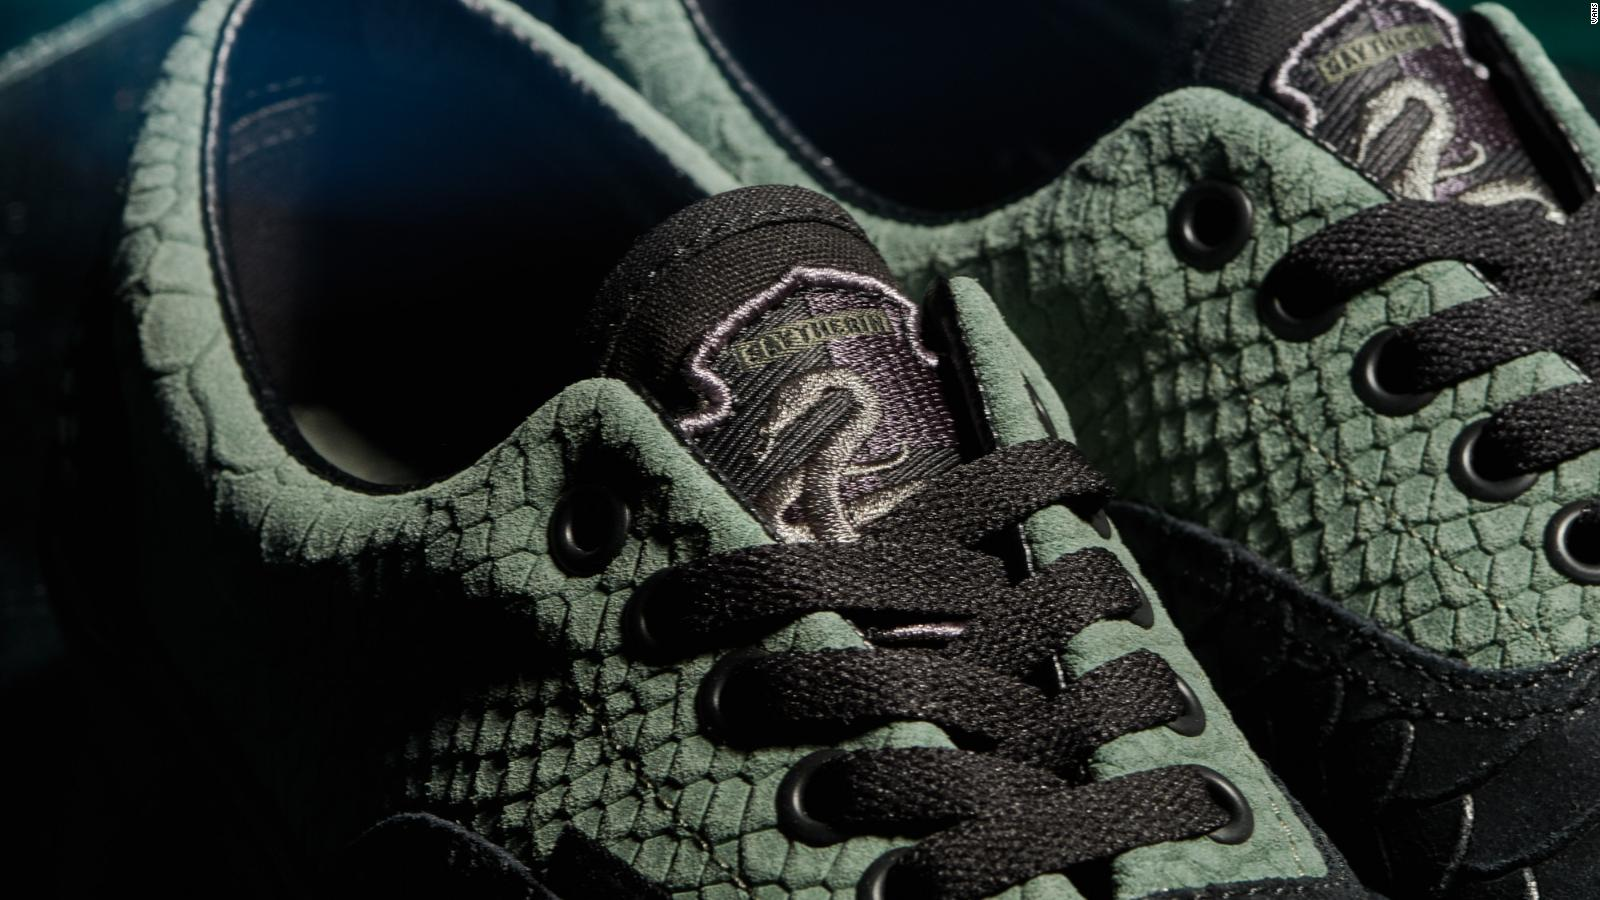 Vans' Harry Potter sneaker collection goes on sale - CNN Style